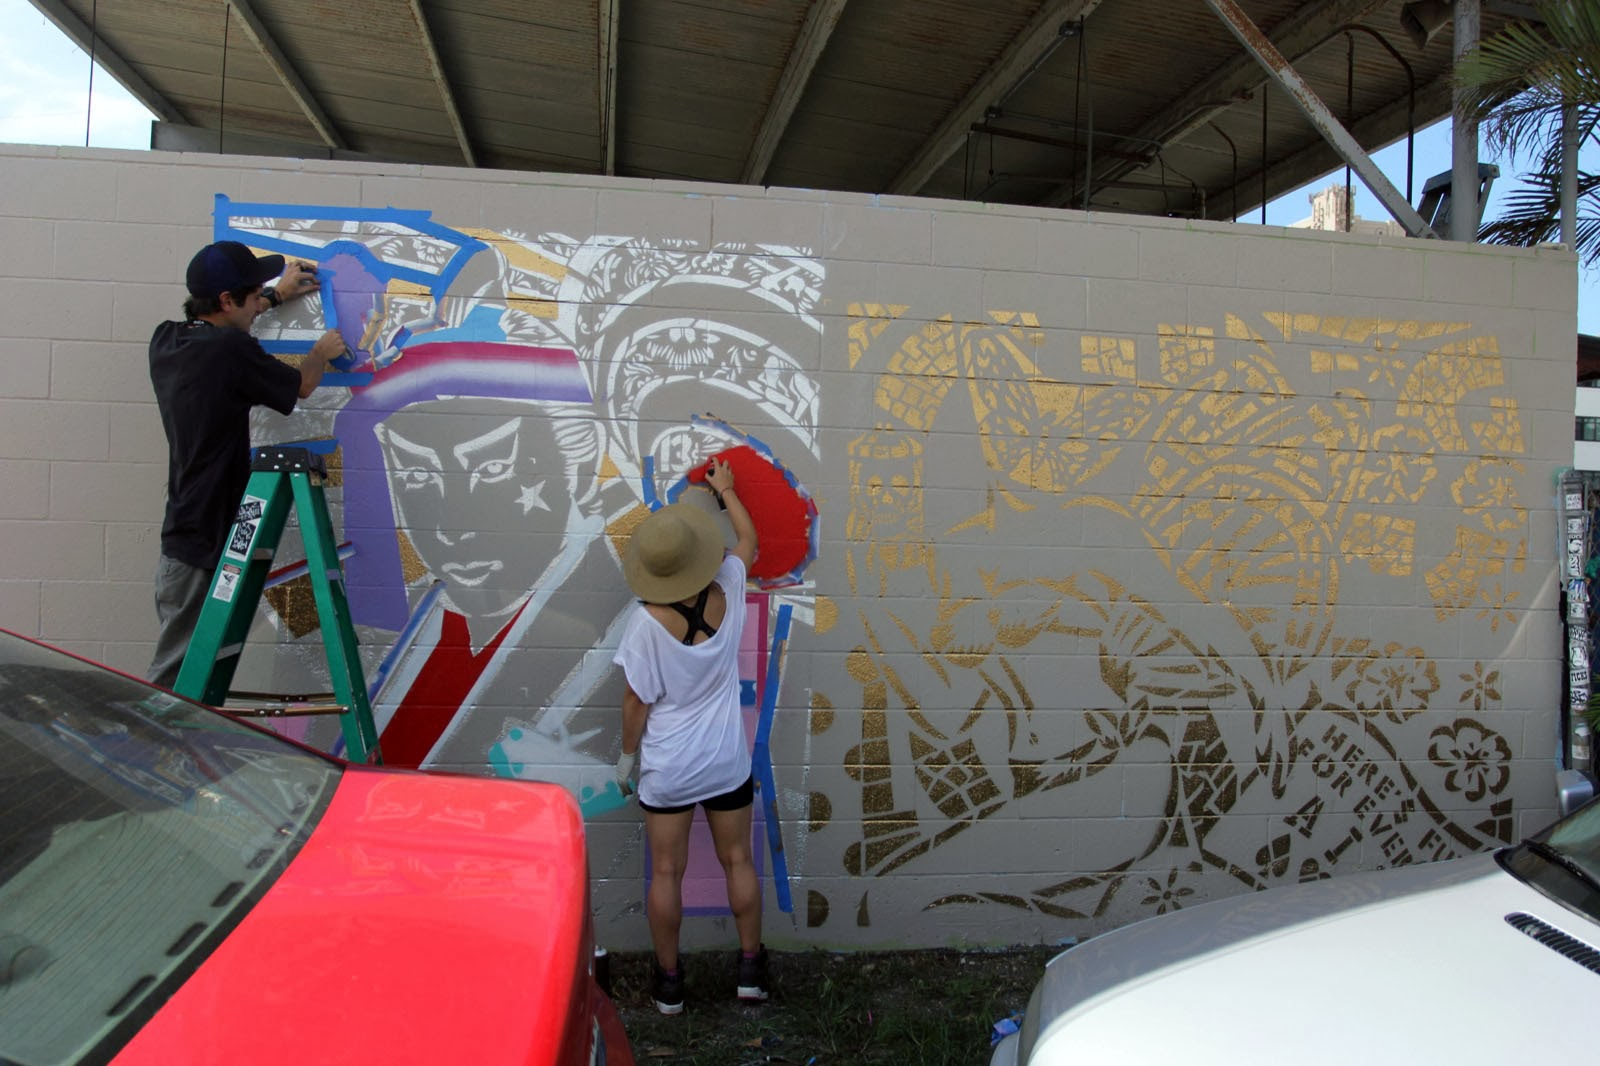 We kick off our special coverage of POW! WOW! Hawaii 2014 with Lady Aiko working on her new piece in Honolulu. 1